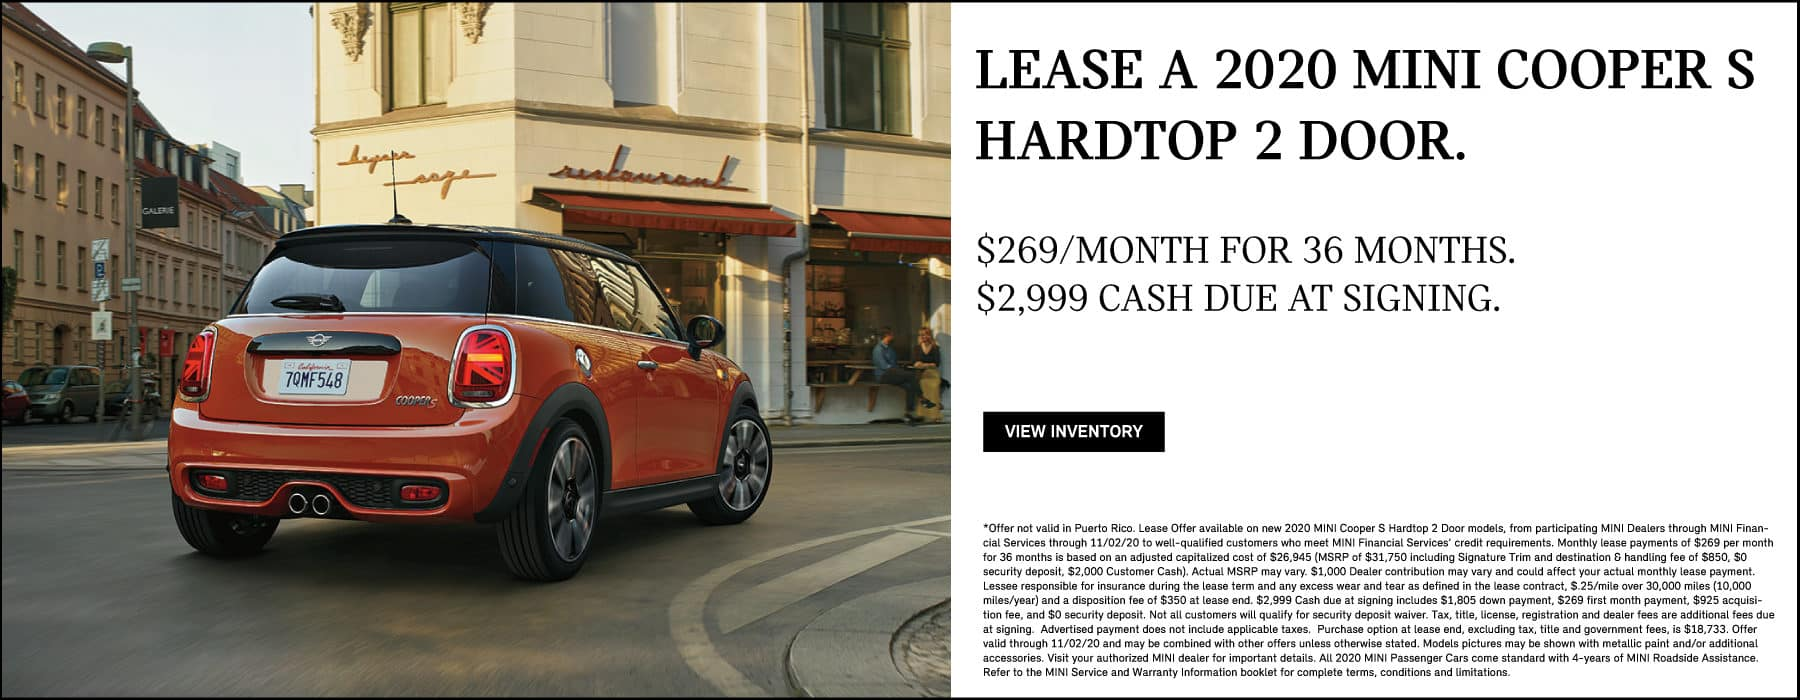 LEASE A 2020 MINI COOPER S HARDTOP 2 DOOR FOR $269 A MONTH FOR 36 MONTHS. $2,999 DUE AT SIGNING. VIEW INVENTORY BUTTON. *Offer not valid in Puerto Rico. Lease Offer available on new 2020 MINI Cooper S Hardtop 2 Door models, from participating MINI Dealers through MINI Financial Services through 11/02/20 to well-qualified customers who meet MINI Financial Services' credit requirements. Monthly lease payments of $269 per month for 36 months is based on an adjusted capitalized cost of $26,945 (MSRP of $31,750 including Signature Trim and destination & handling fee of $850, $0 security deposit, $2,000 Customer Cash). Actual MSRP may vary. $1,000 Dealer contribution may vary and could affect your actual monthly lease payment. Lessee responsible for insurance during the lease term and any excess wear and tear as defined in the lease contract, $.25/mile over 30,000 miles (10,000 miles/year) and a disposition fee of $350 at lease end. $2,999 Cash due at signing includes $1,805 down payment, $269 first month payment, $925 acquisition fee, and $0 security deposit. Not all customers will qualify for security deposit waiver. Tax, title, license, registration and dealer fees are additional fees due at signing. Advertised payment does not include applicable taxes. Purchase option at lease end, excluding tax, title and government fees, is $18,733. Offer valid through 11/02/20 and may be combined with other offers unless otherwise stated. Models pictures may be shown with metallic paint and/or additional accessories. Visit your authorized MINI dealer for important details. All 2020 MINI Passenger Cars come standard with 4-years of MINI Roadside Assistance. Refer to the MINI Service and Warranty Information booklet for complete terms, conditions and limitations.